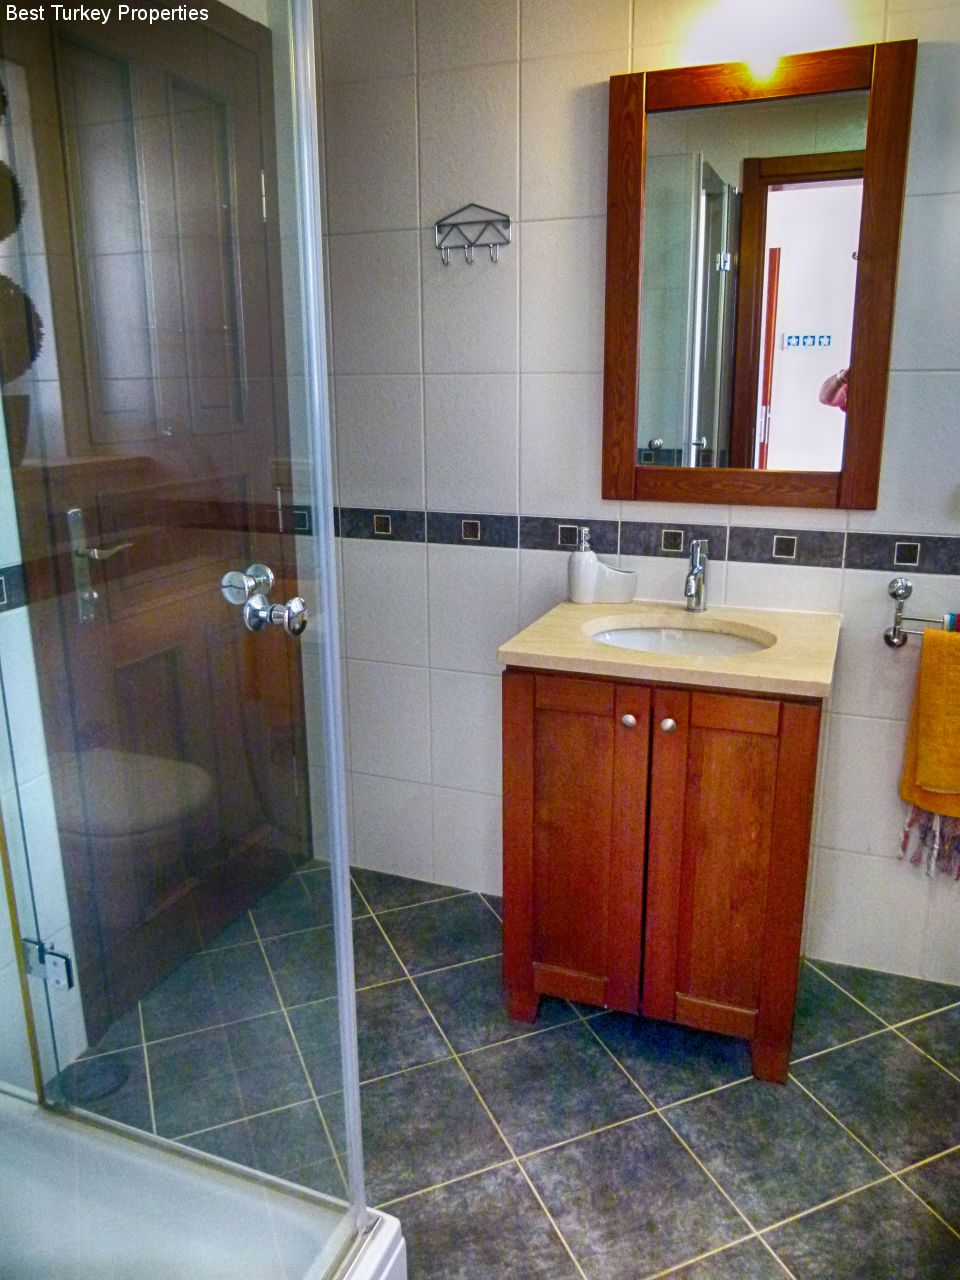 Private Jack & Jill Shower Room shared by Beds # & # with large glass shower cubicle, sink &  WC